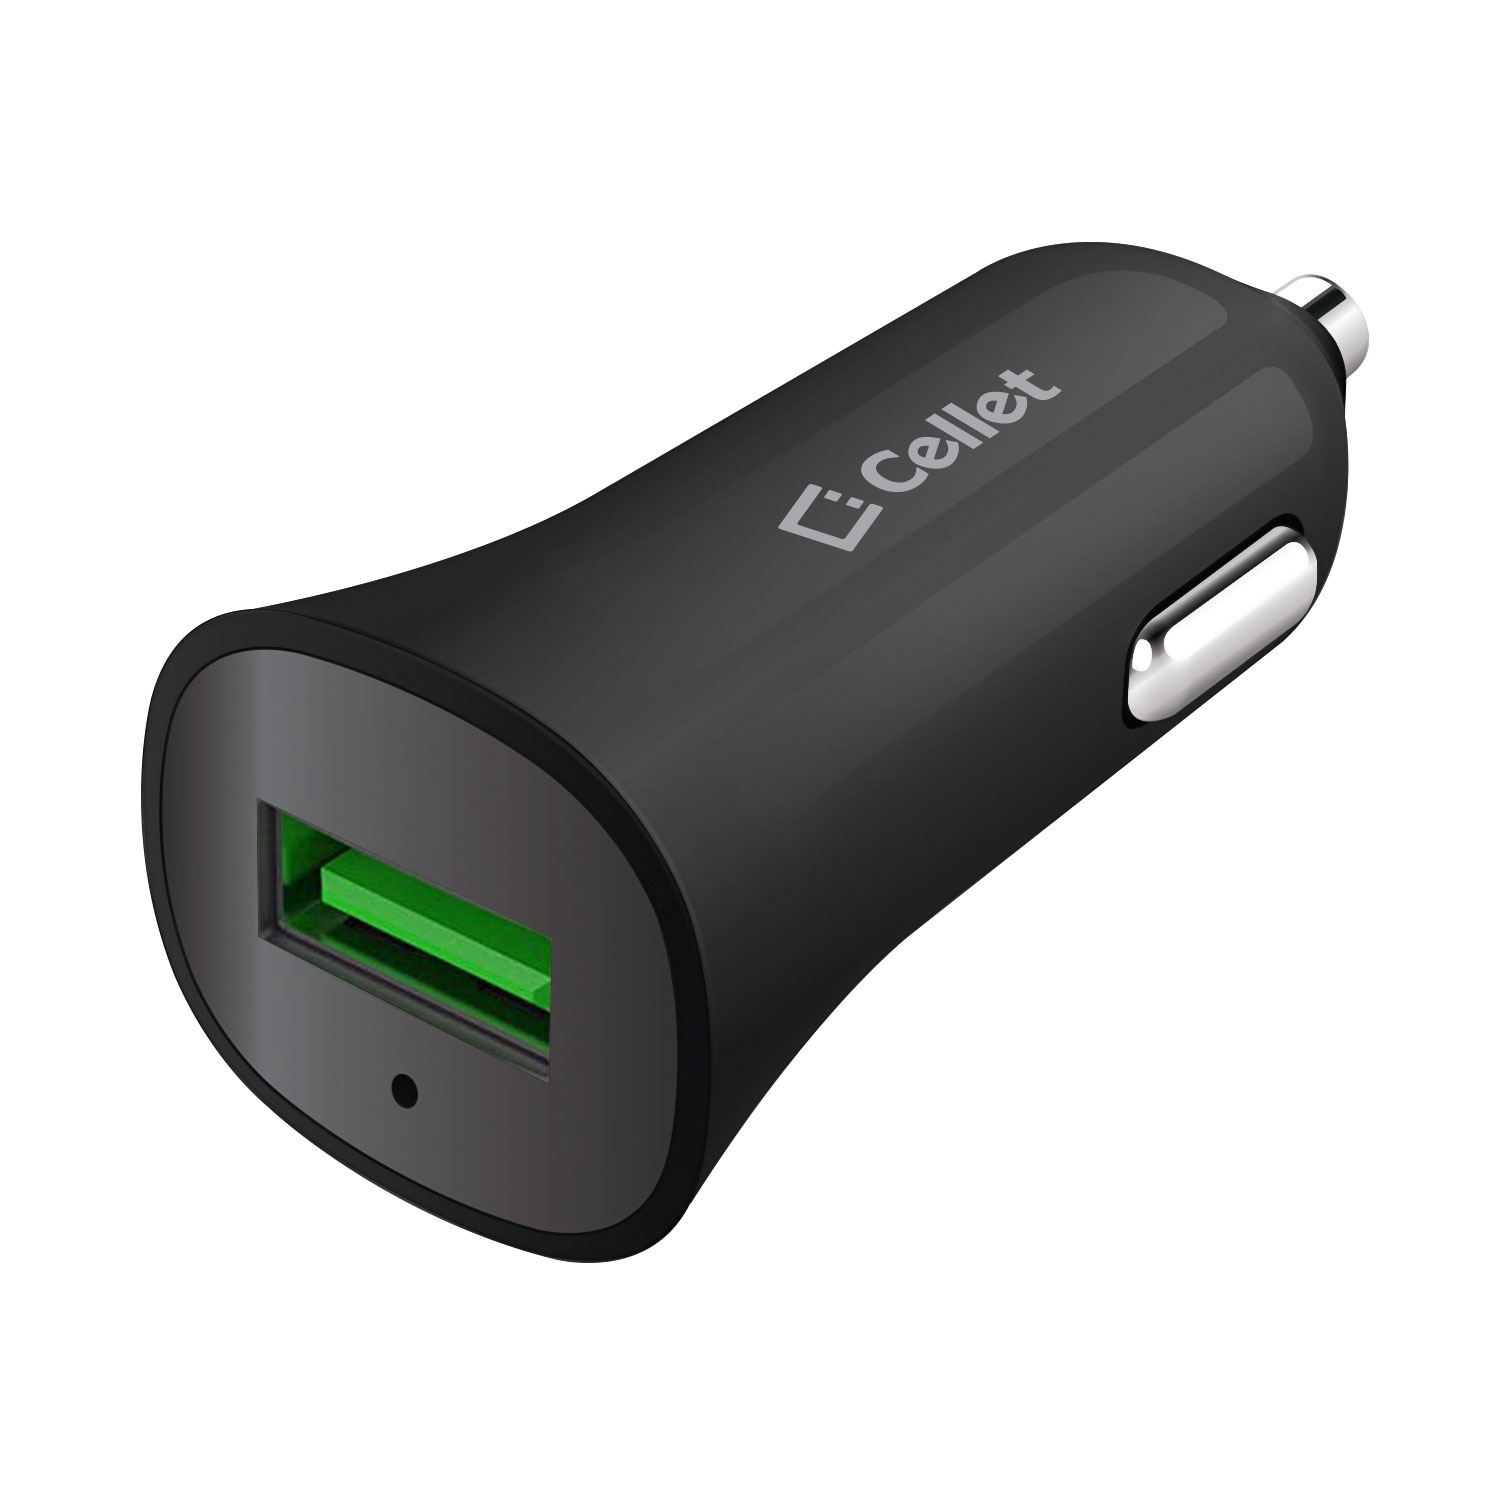 Alcatel Go Flip 3 Car Charger Quick Charge 3.0 Black 3.3ft